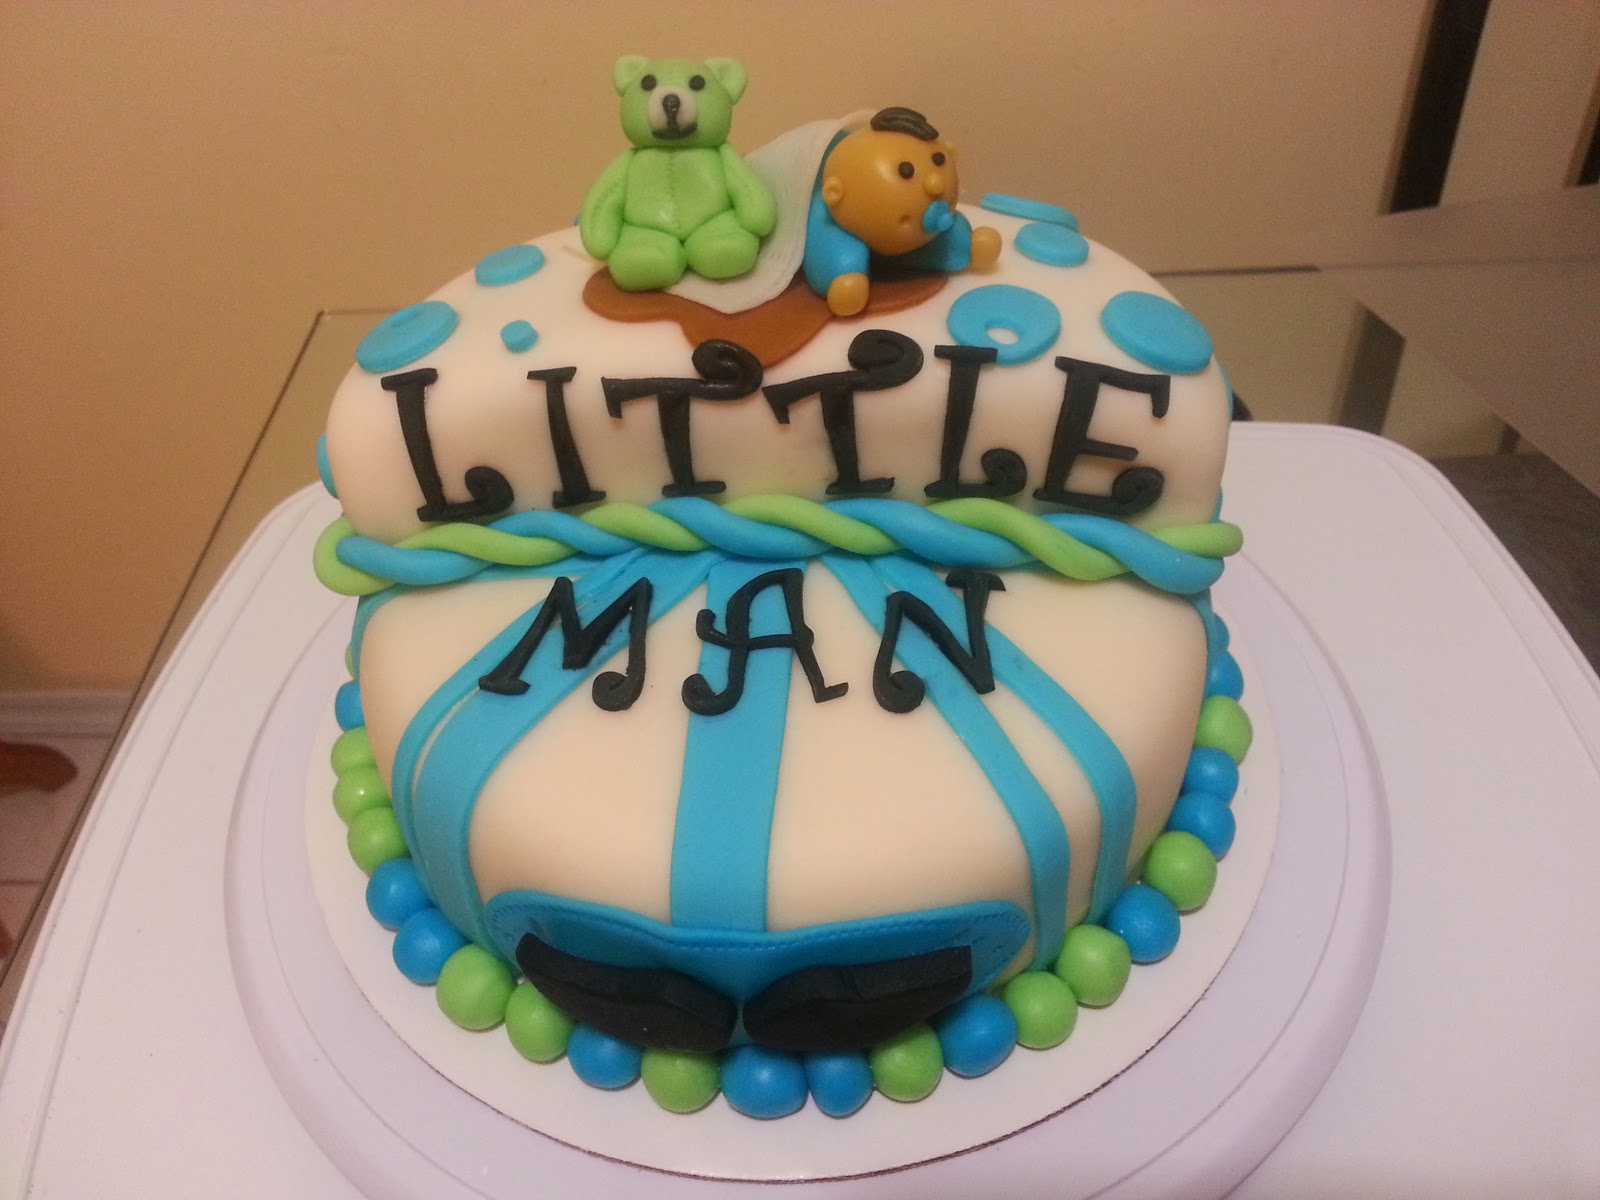 swaggy simple cakes little man baby shower fondant cake